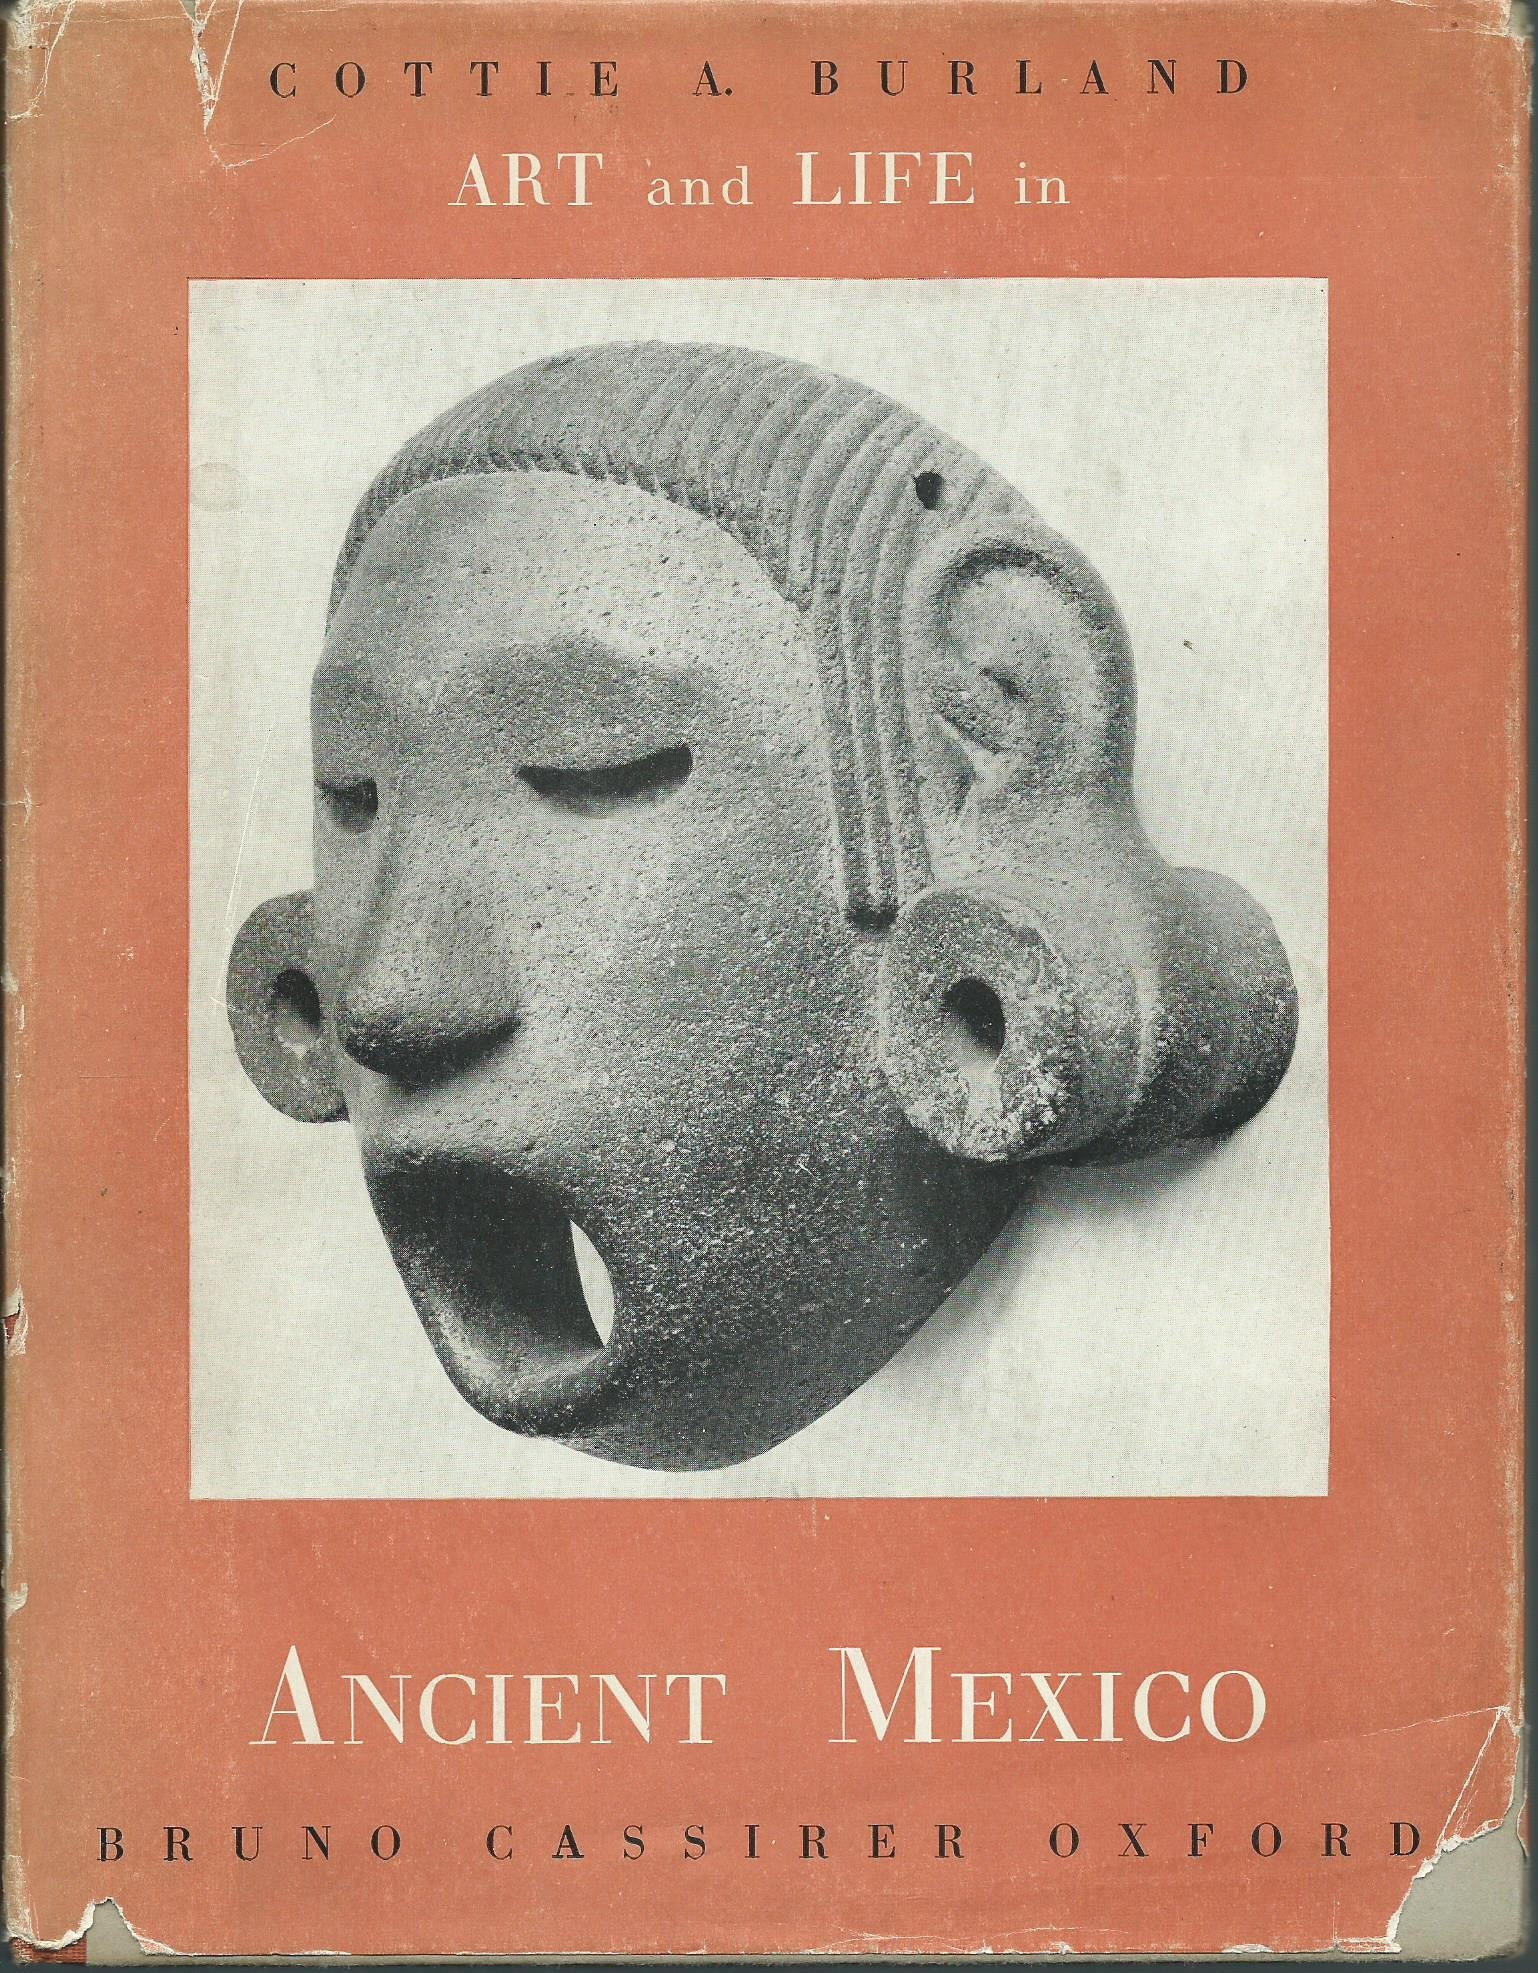 Art and Life in Ancient Mexico - Cottie A. Burland